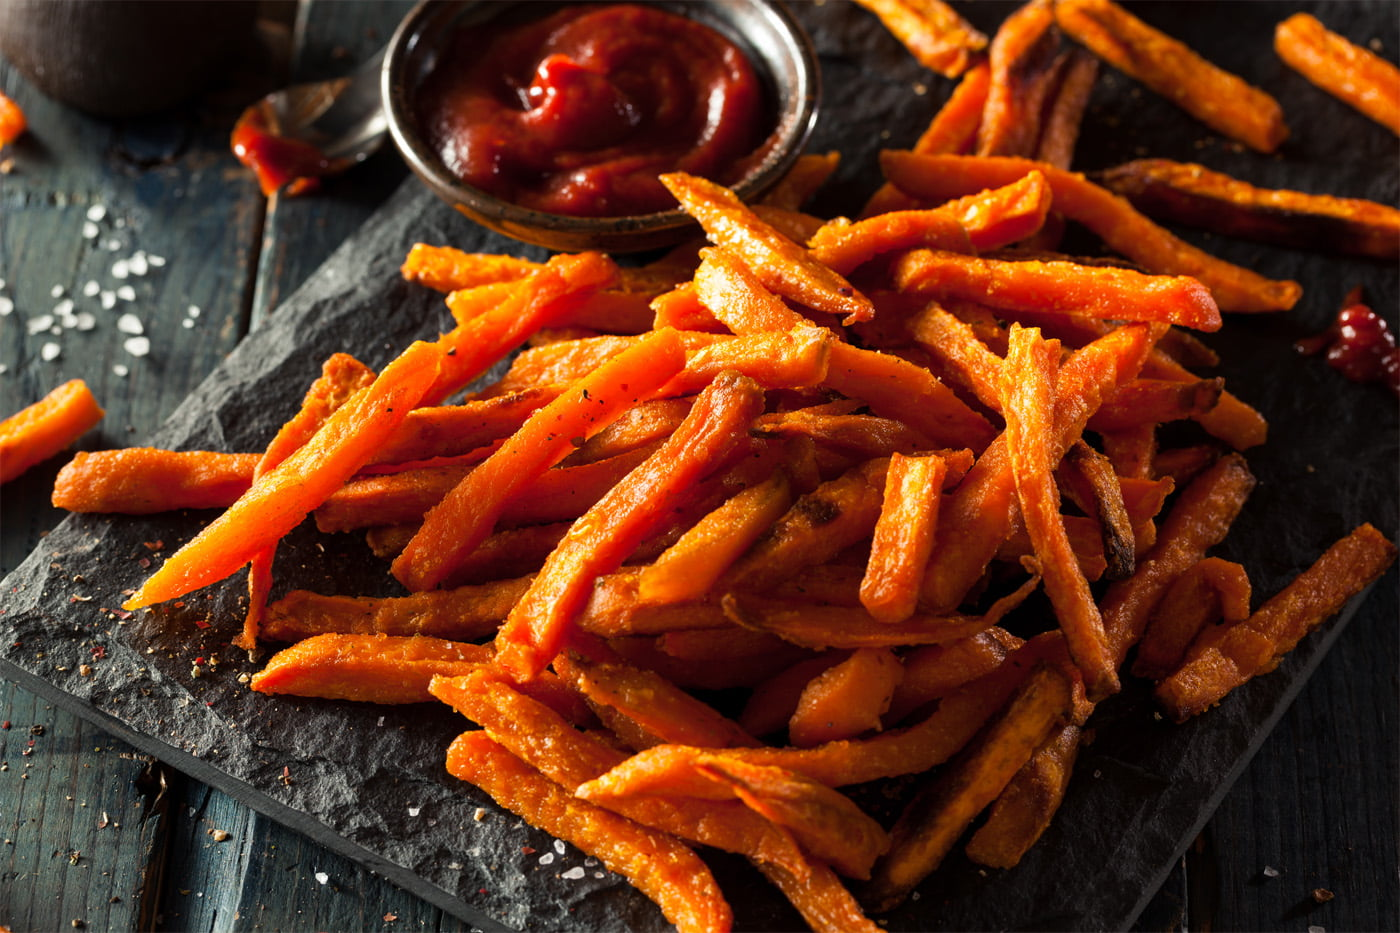 How to Make Garlic Sweet Potato Fries